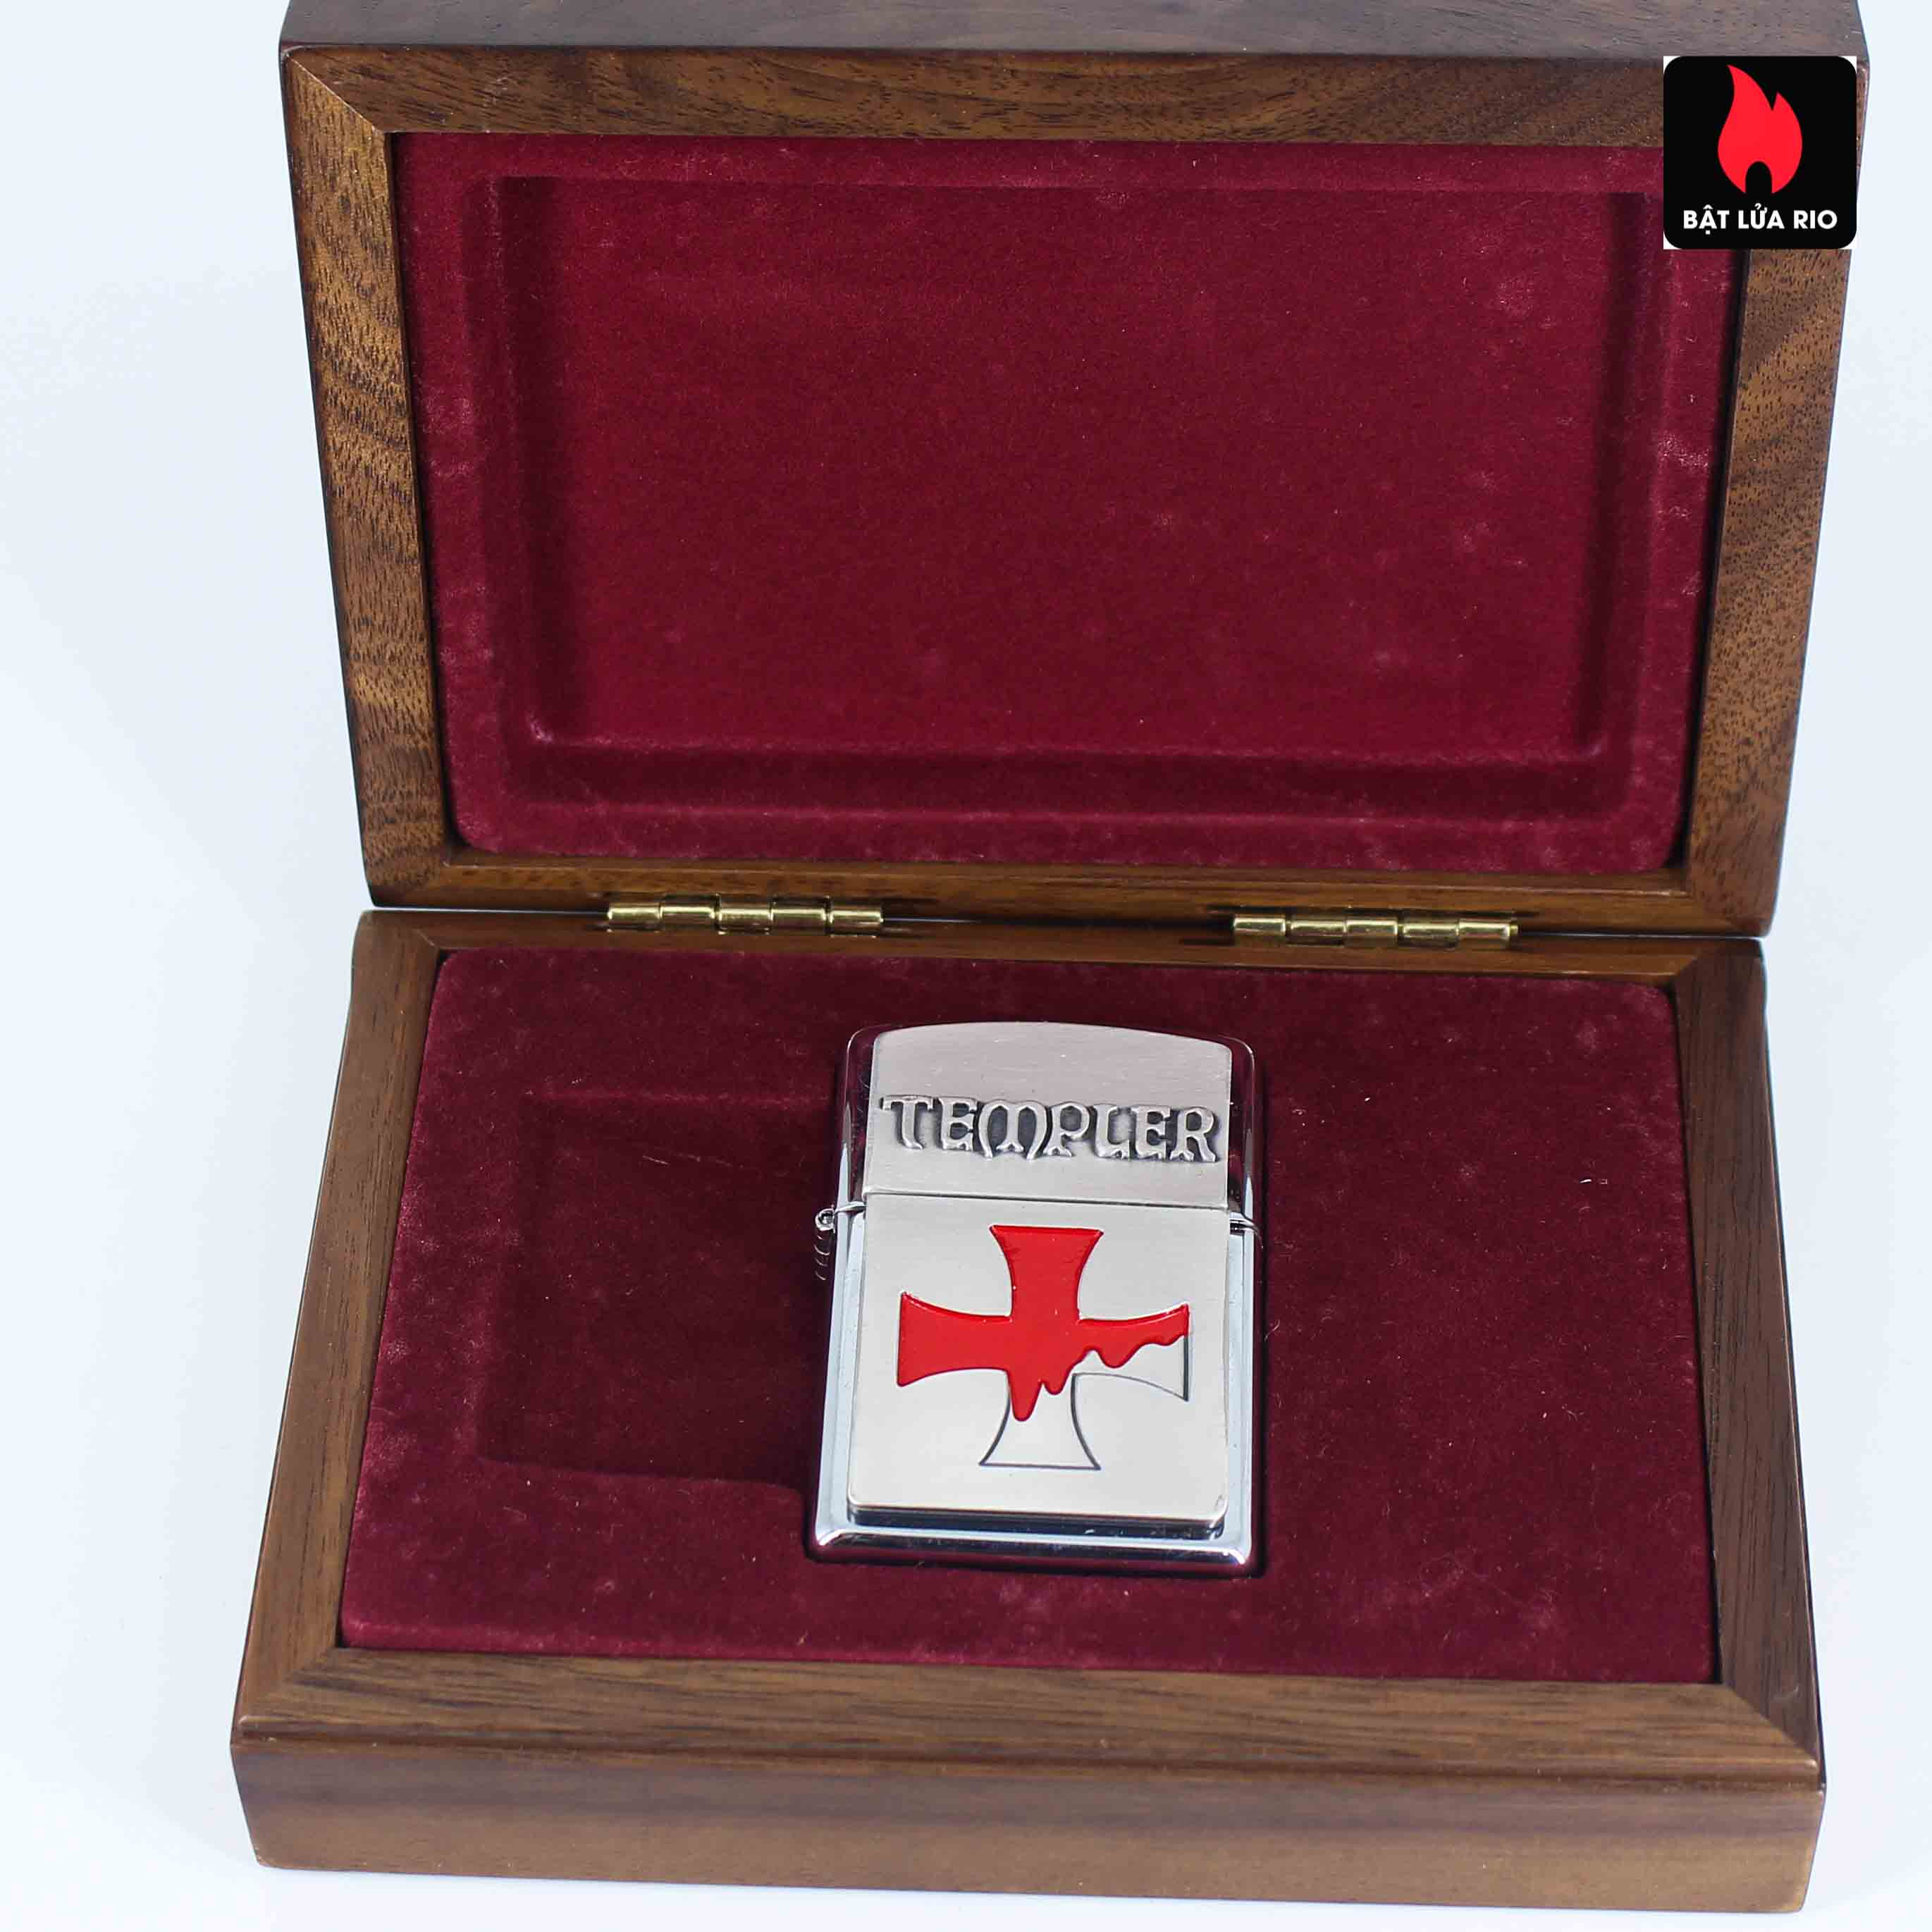 Zippo 2004 – Crusade – Templer Limited Edition 2